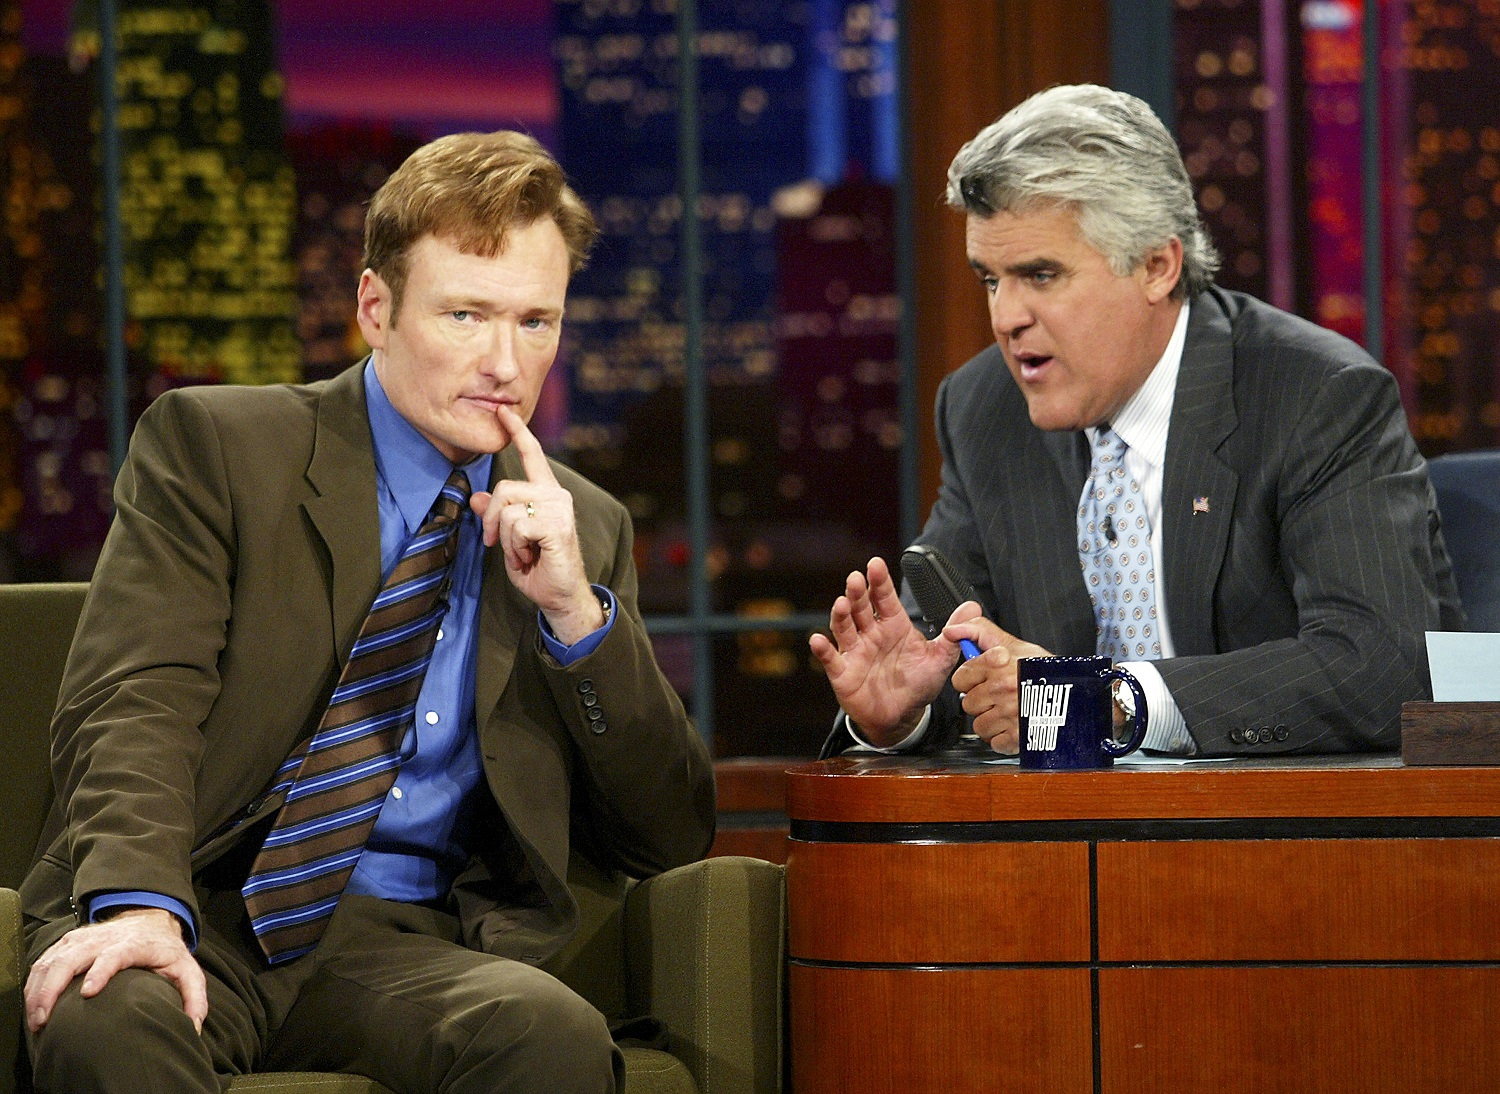 Conan O'Brien interviewed by Jay Leno on 'The Tonight Show with Jay Leno'